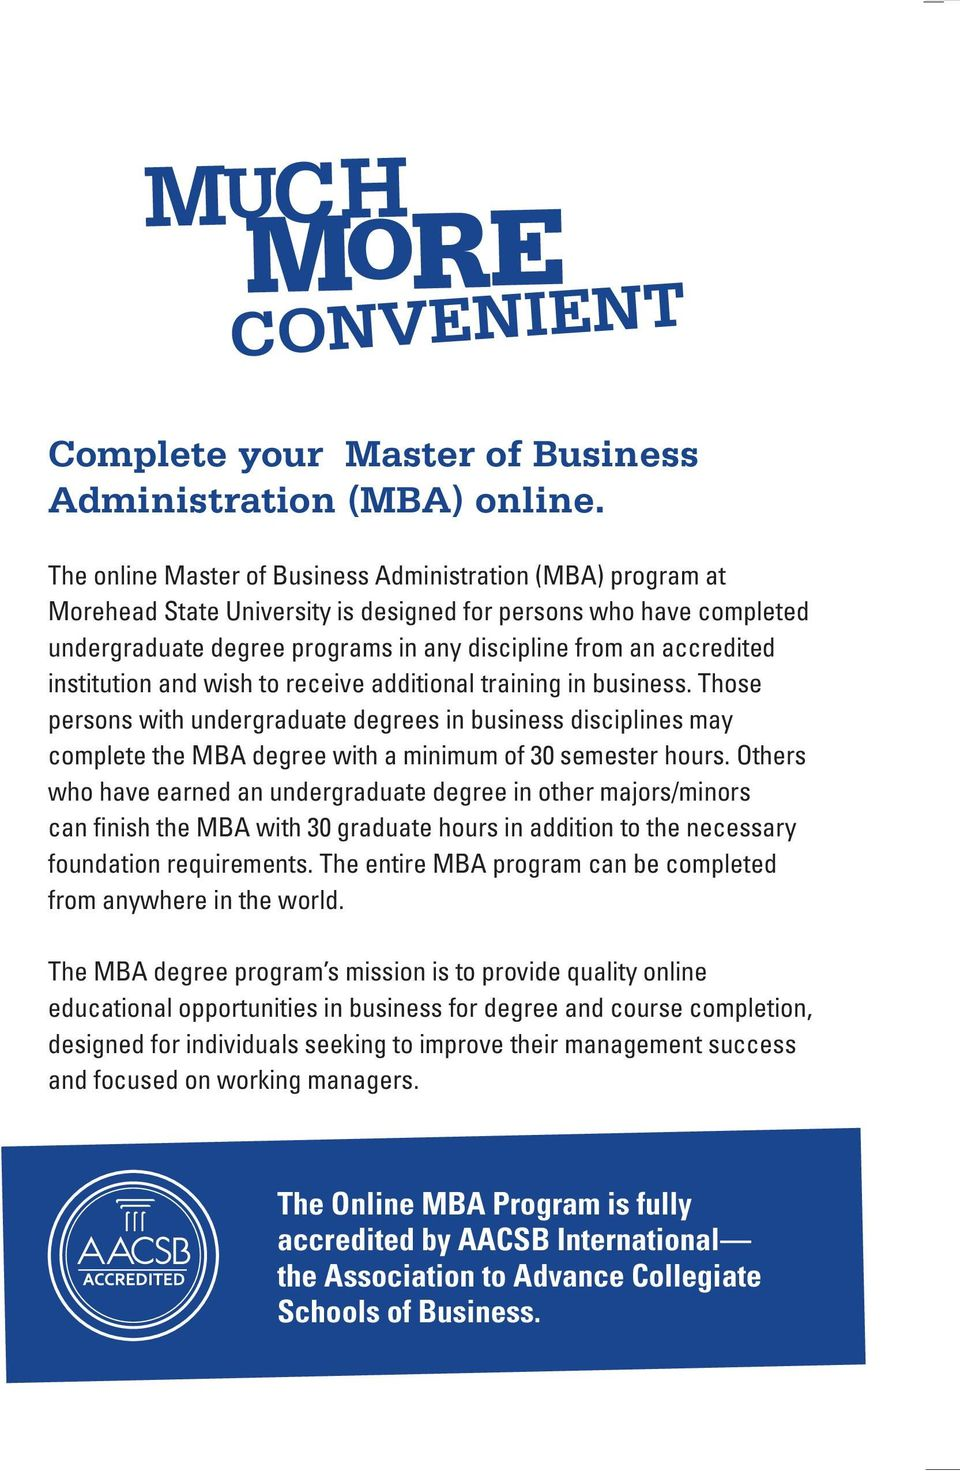 institution and wish to receive additional training in business. Those persons with undergraduate degrees in business disciplines may complete the MBA degree with a minimum of 30 semester hours.